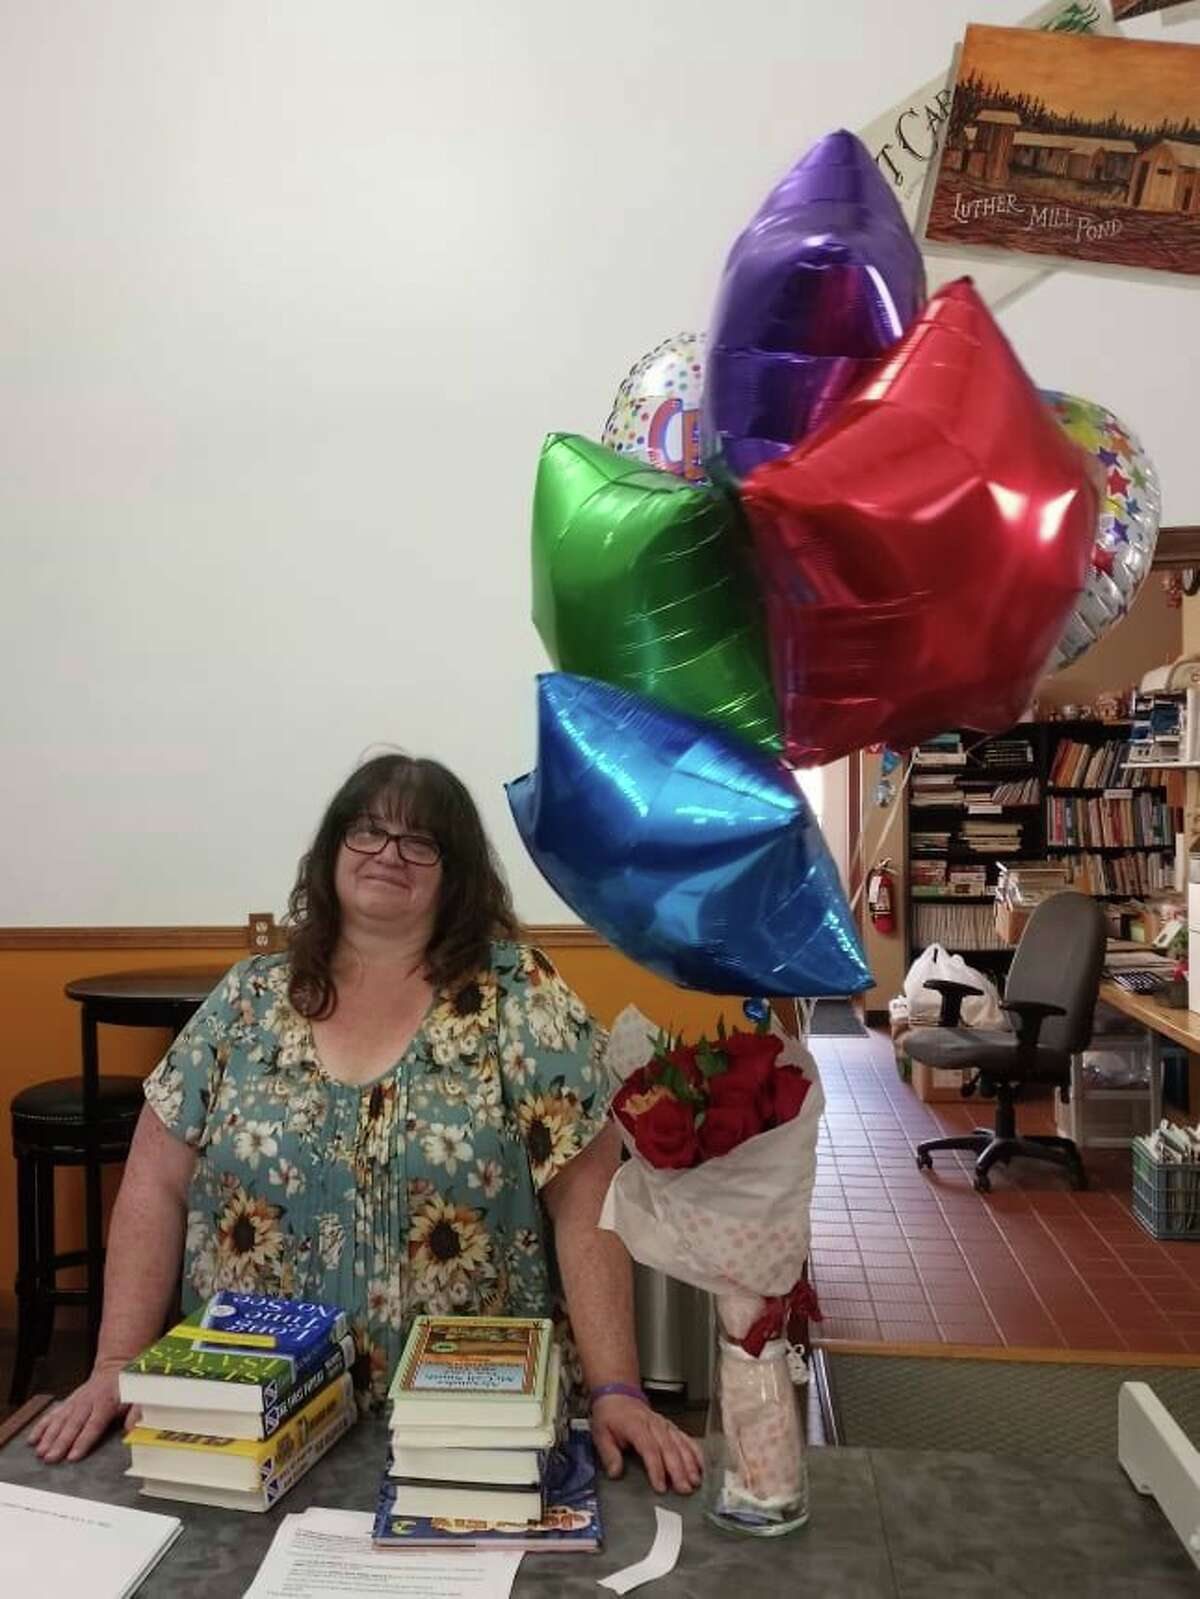 Jody Lucas, librarian at the Luther Public Library for the past 19 years, has retired. (Photo by Shanna Avery for the Star))